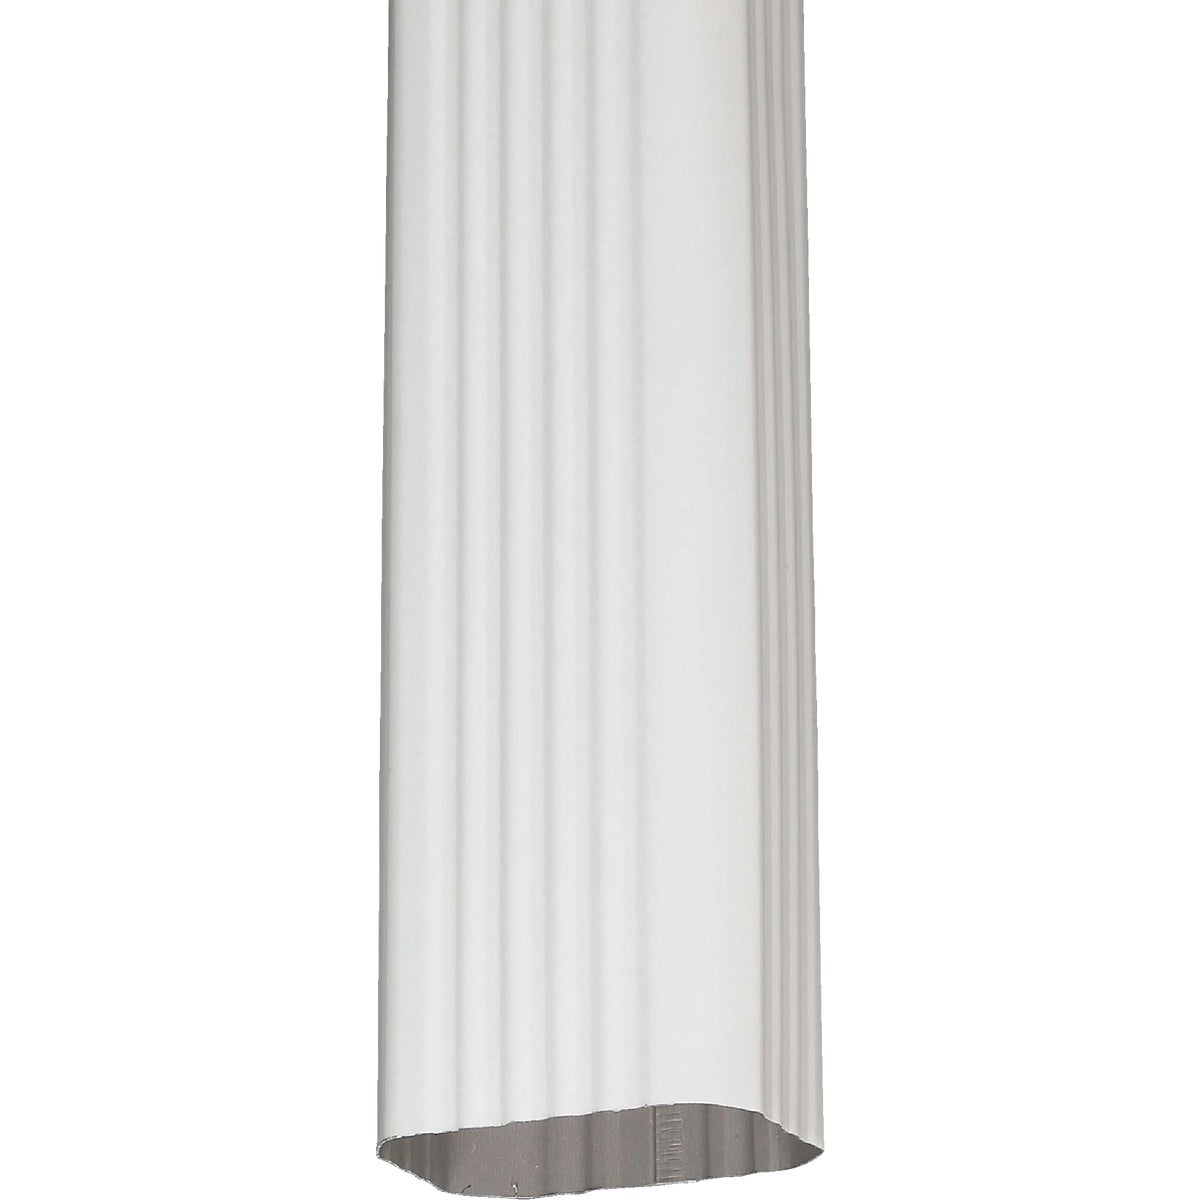 3X4 WHITE DOWNSPOUT - 460110120 by Amerimax Home Prod